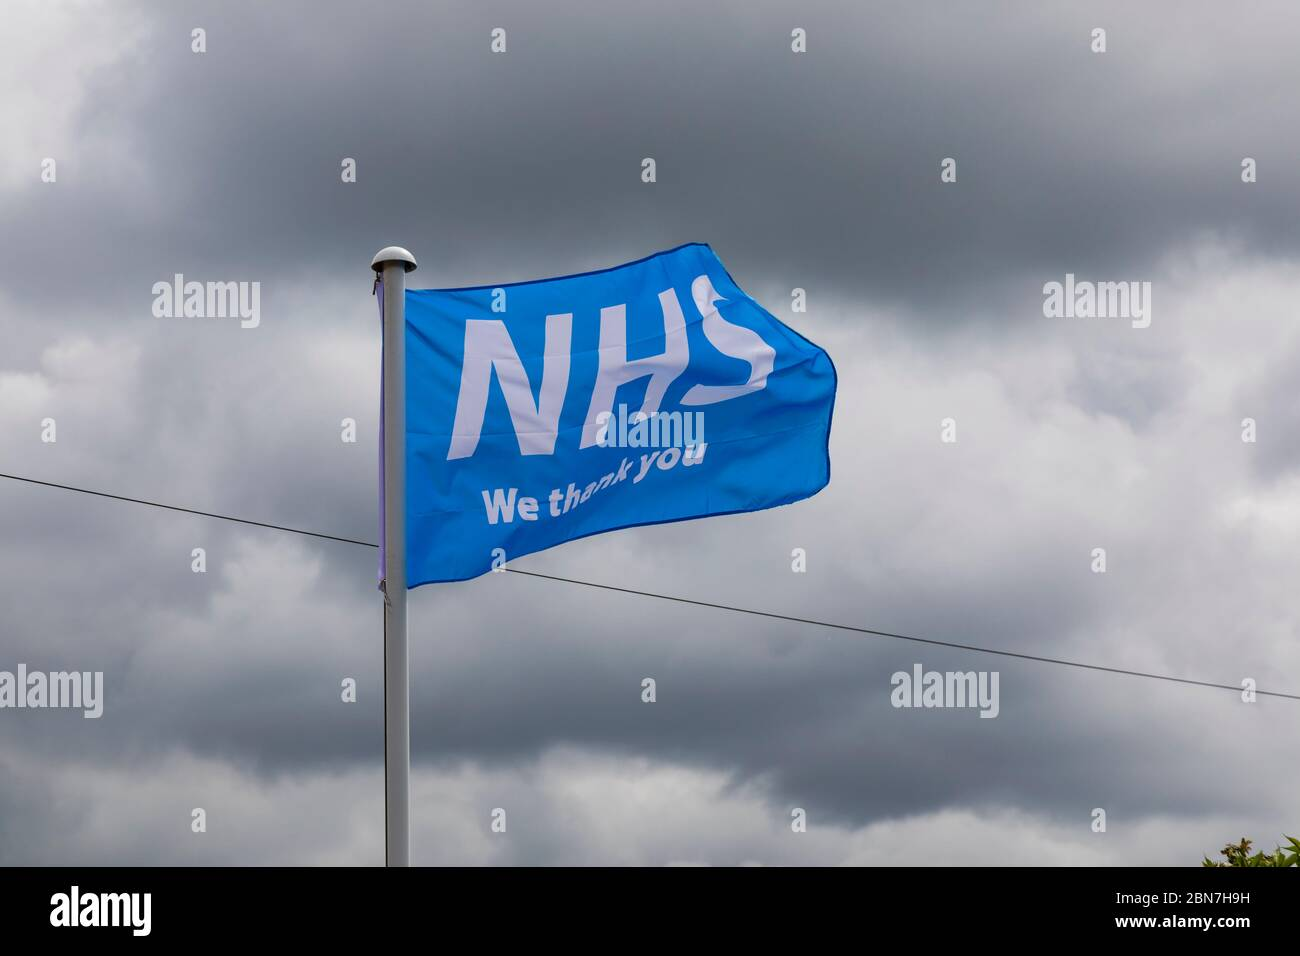 """Thank you NHS"" flag flying during the Covid-19 Corona virus pandemic, England May 2020 Stock Photo"